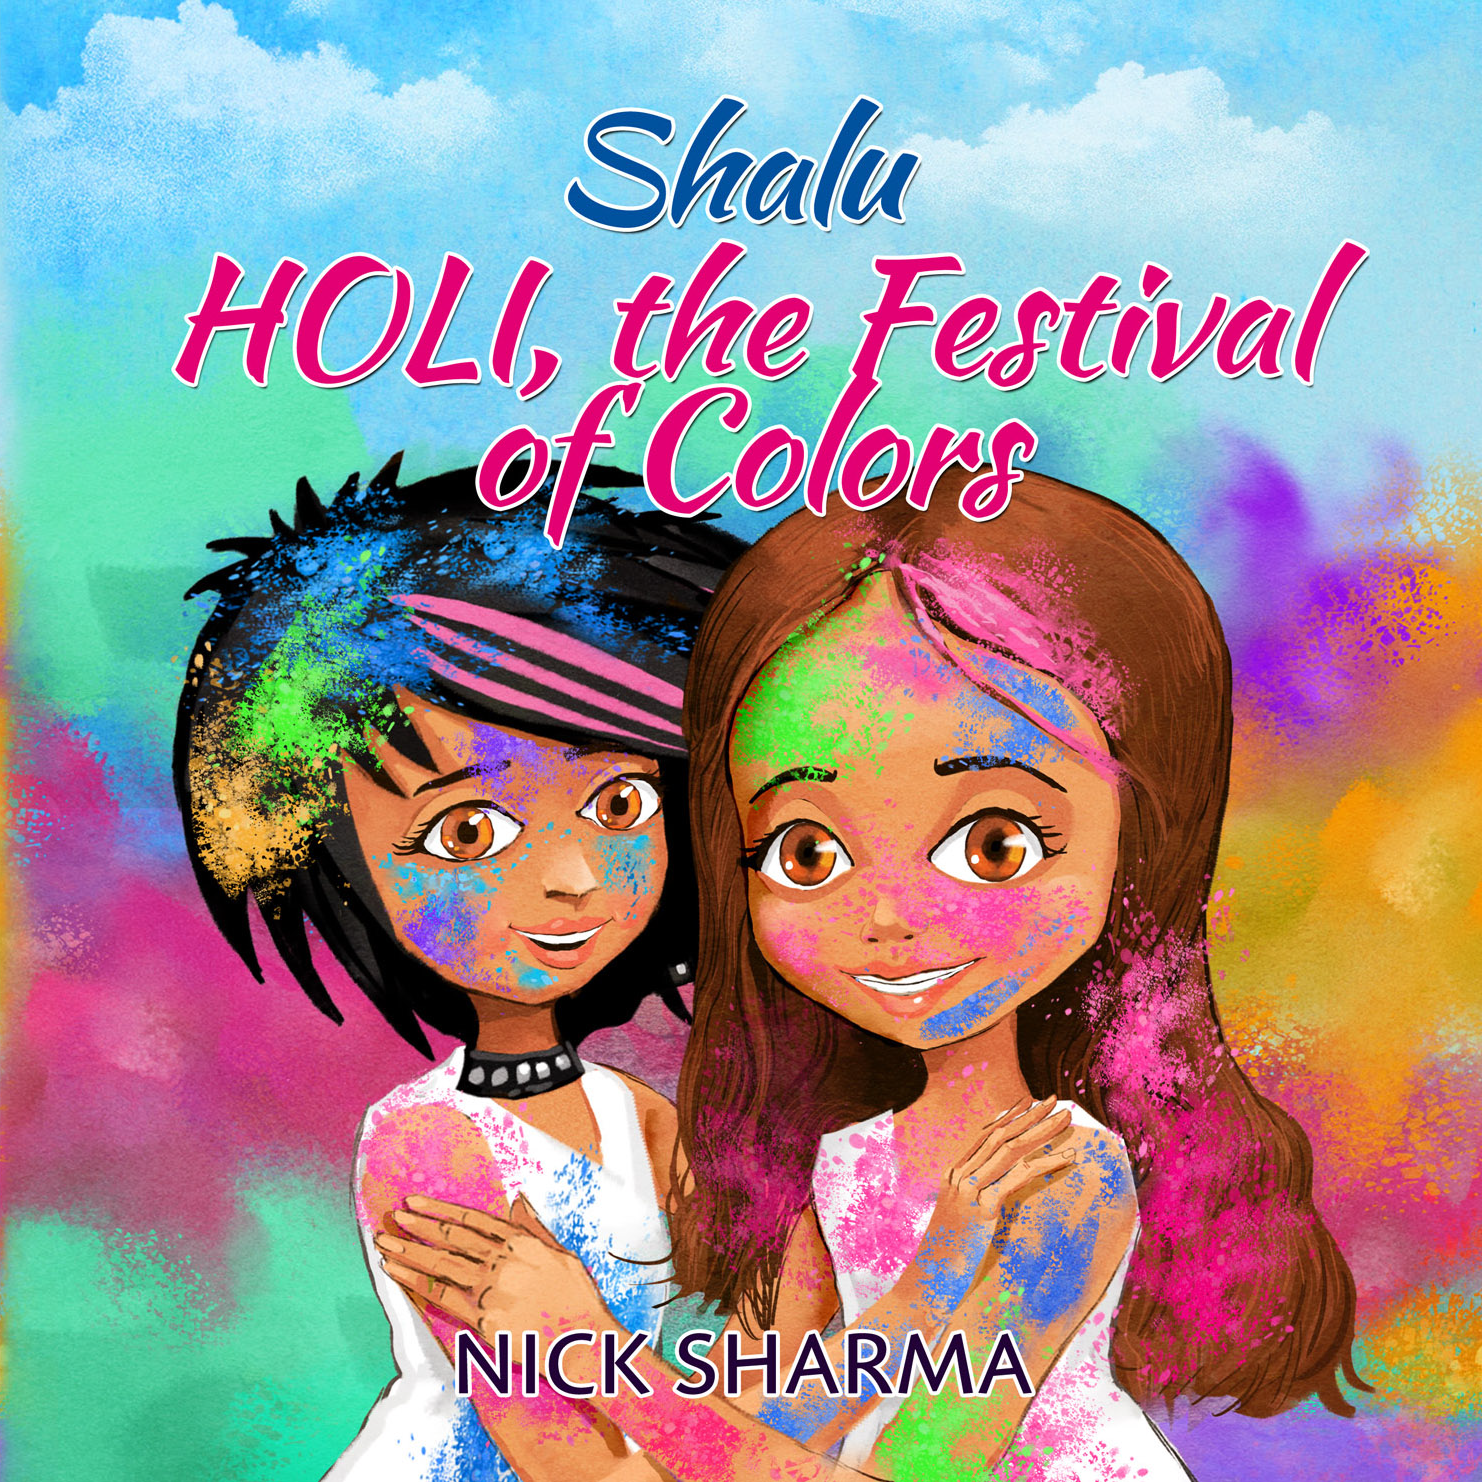 Come and play with Shalu as she teaches about the Indian tradition of Holi, The Festival of Colors and learns how to get along with others despite having differences.